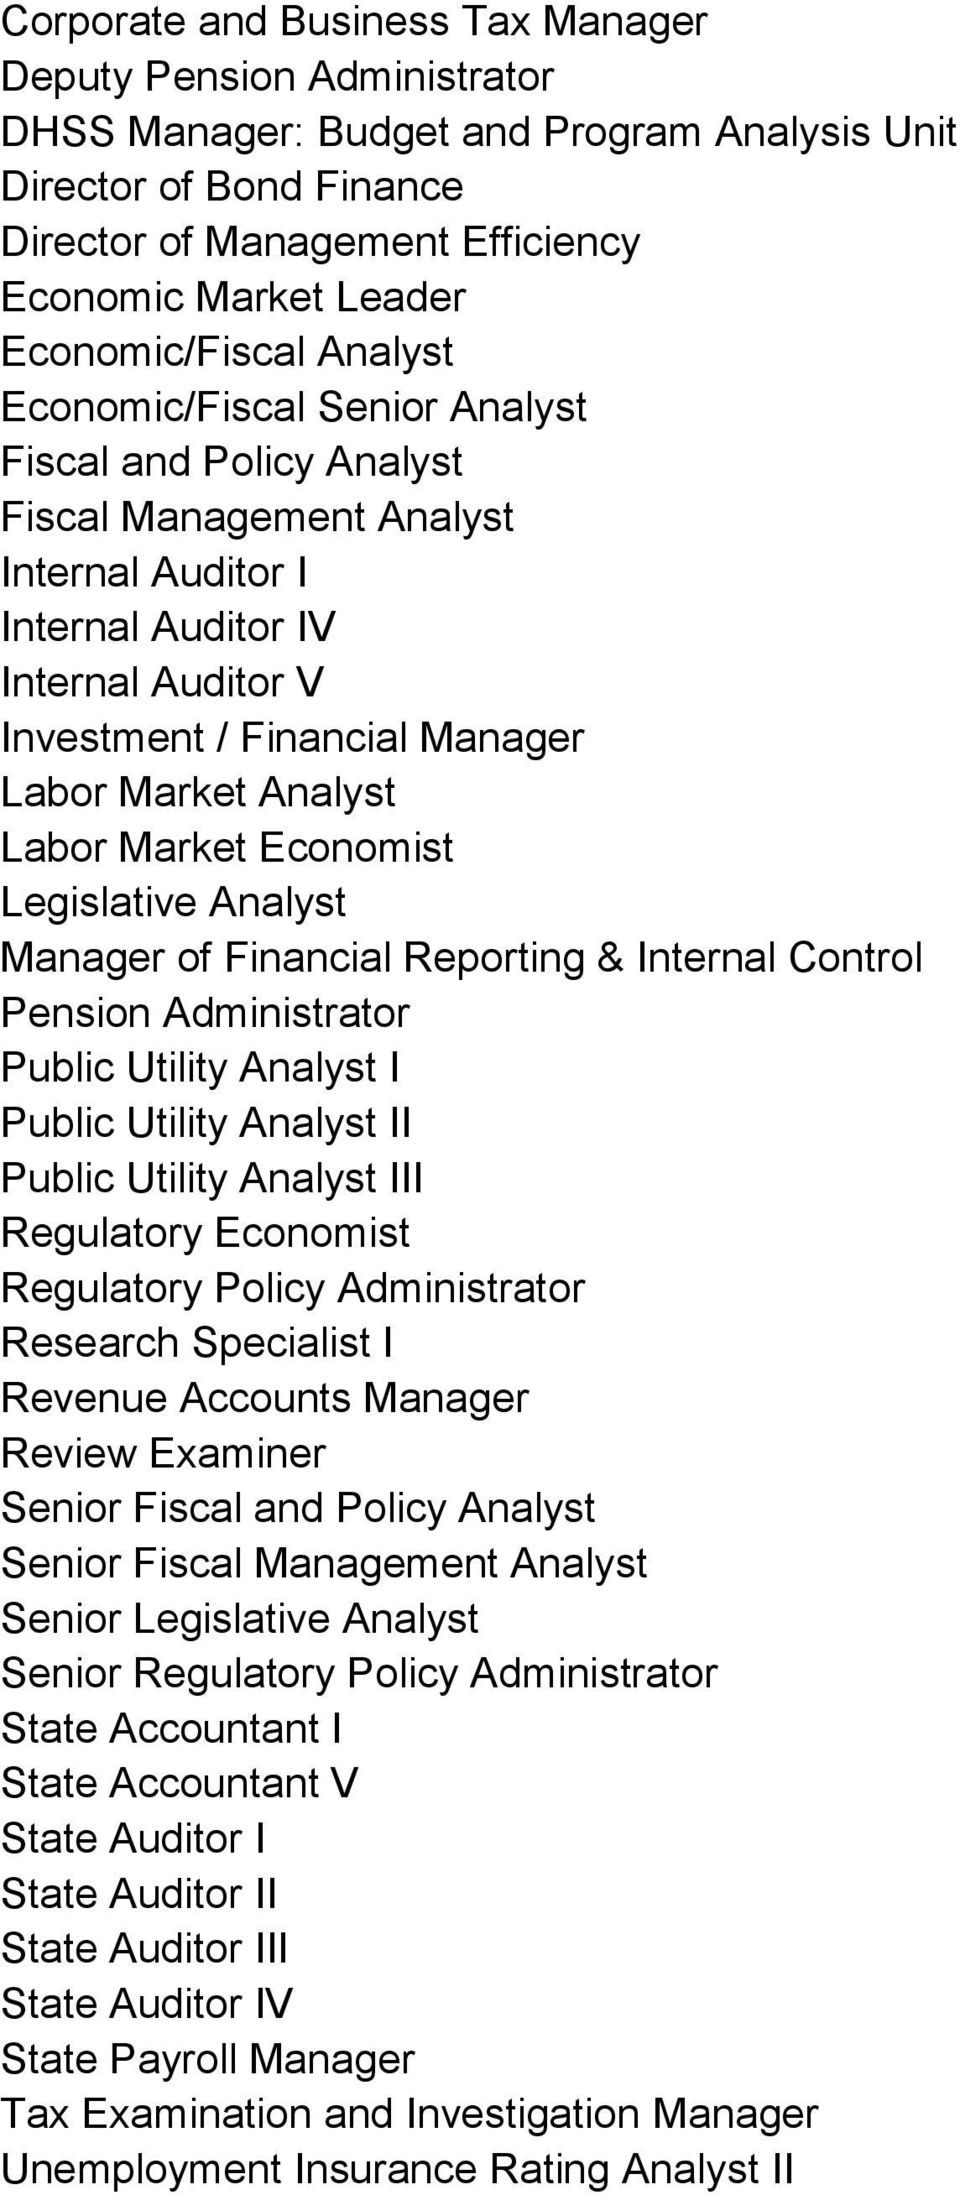 Labor Market Analyst Labor Market Economist Legislative Analyst Manager of Financial Reporting & Internal Control Pension Administrator Public Utility Analyst I Public Utility Analyst II Public